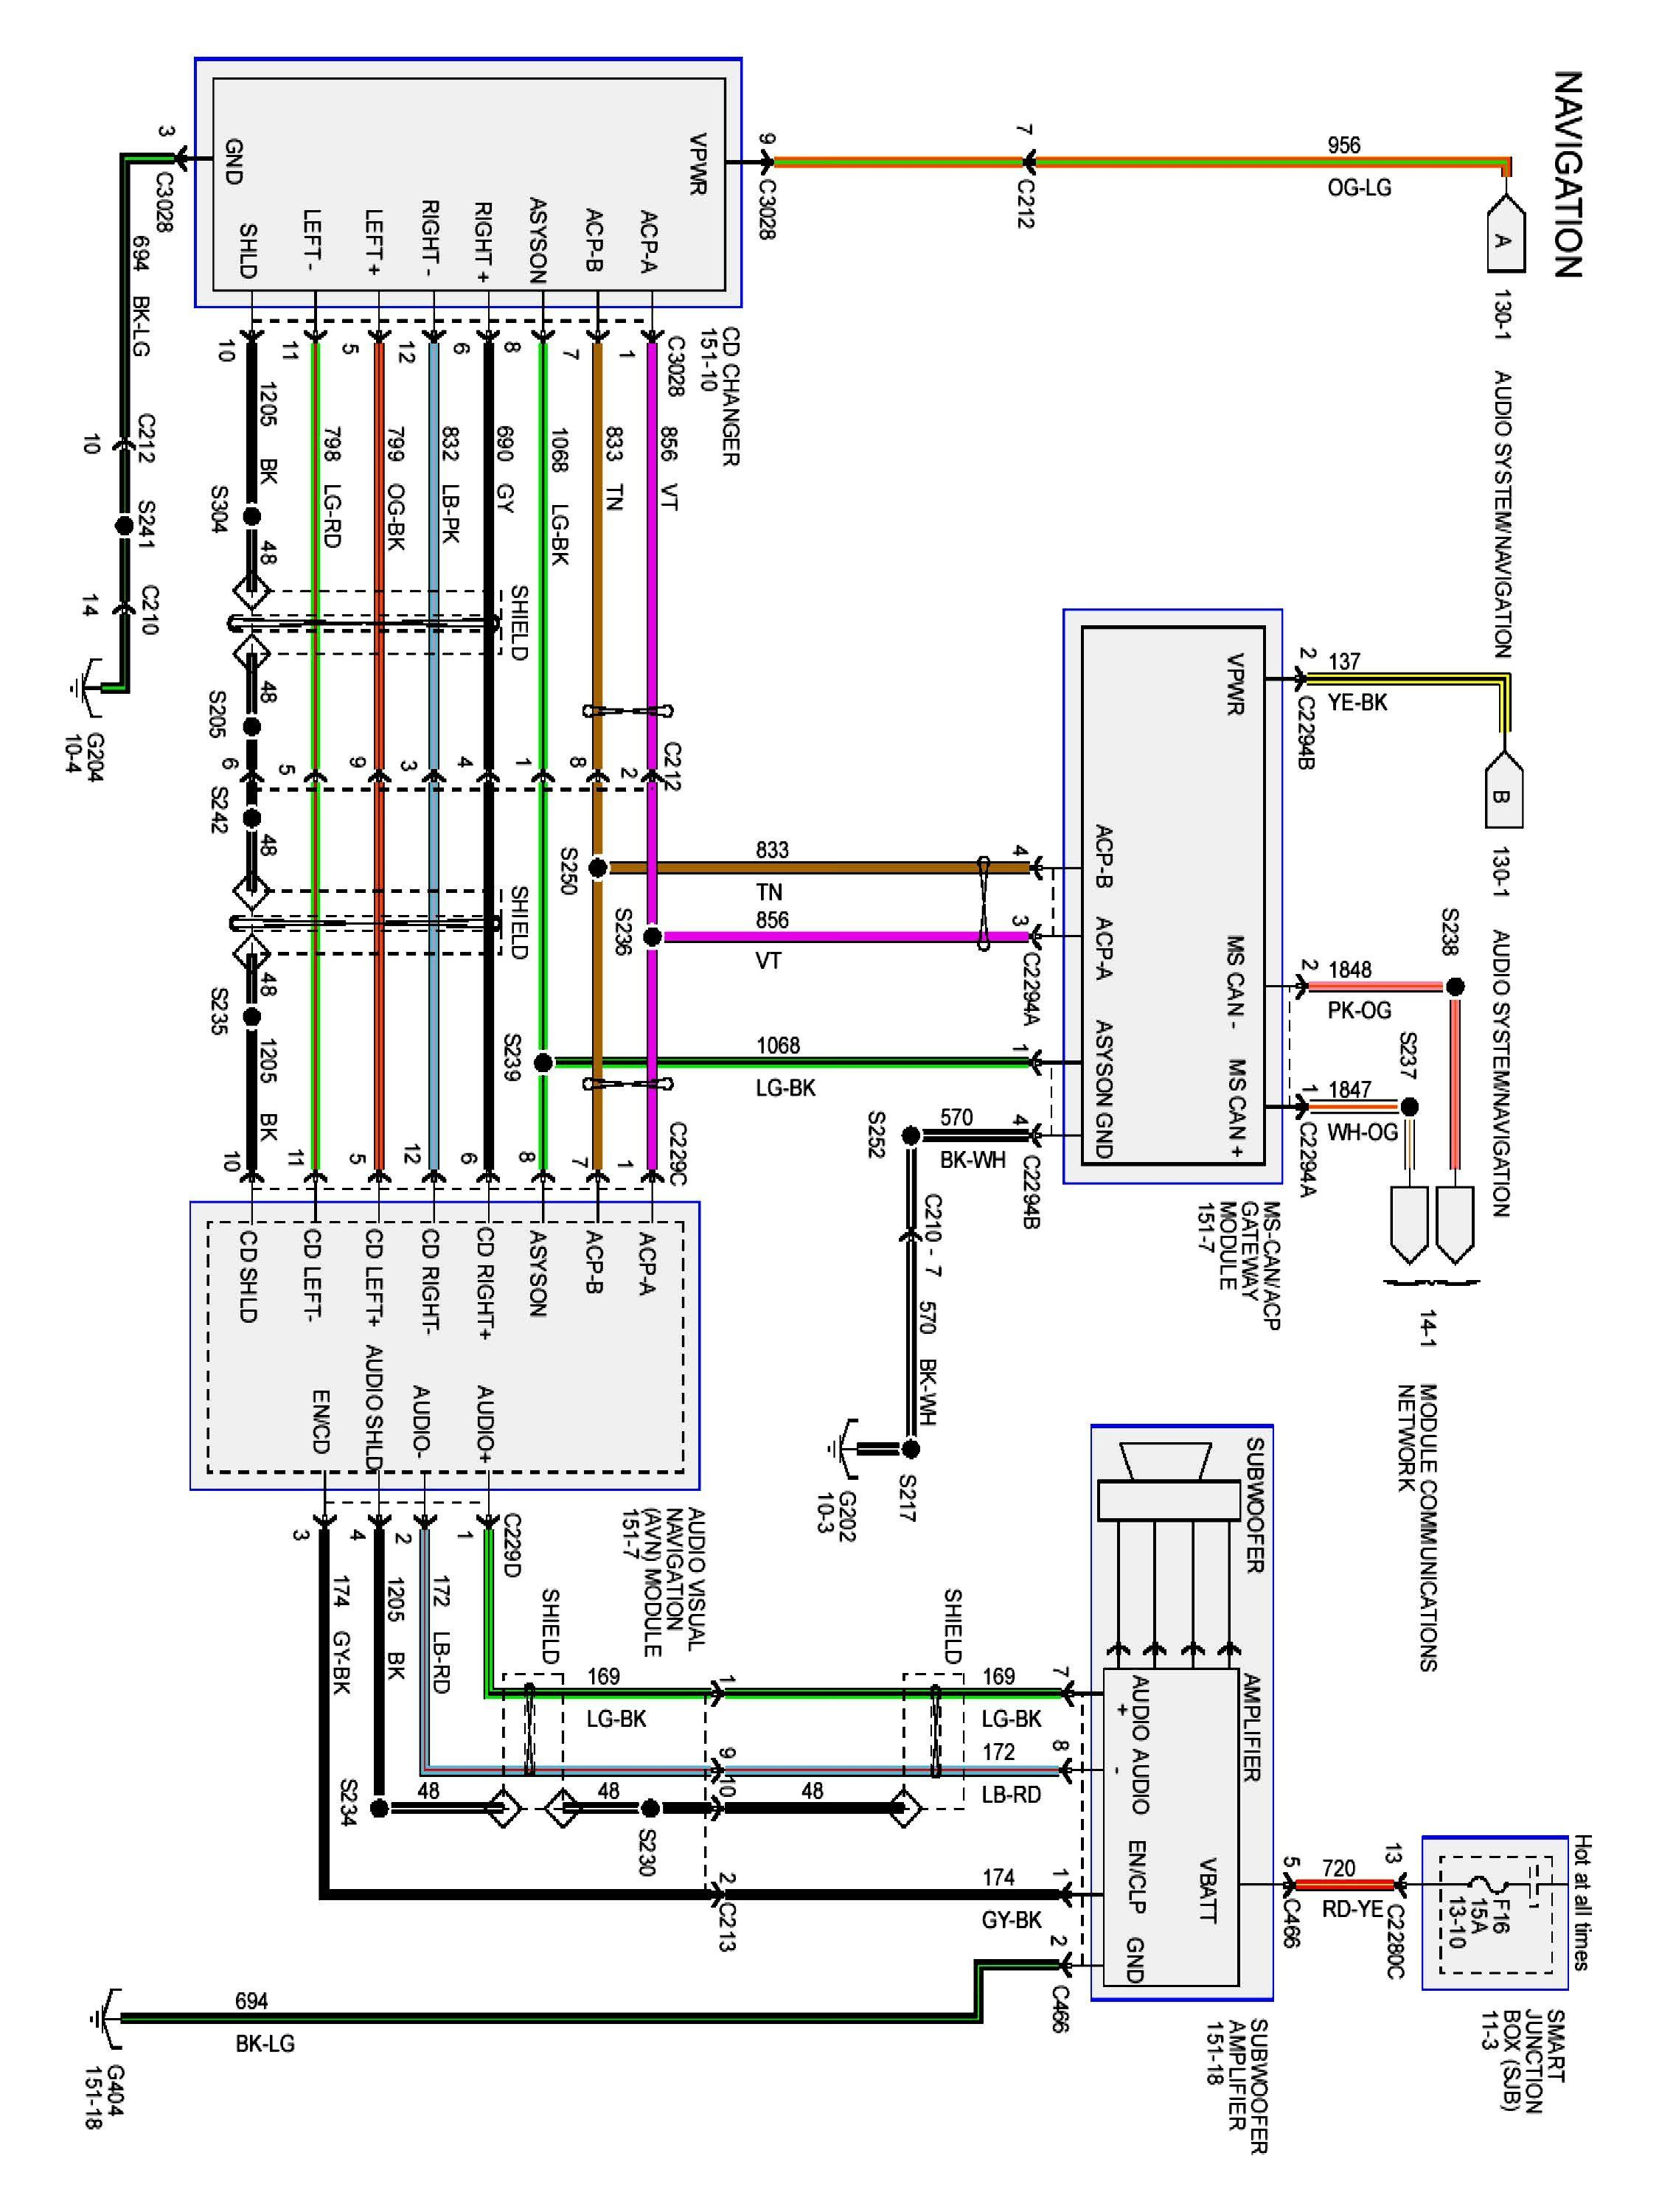 Toyota Jbl Amplifier Wiring Diagram Ford expedition